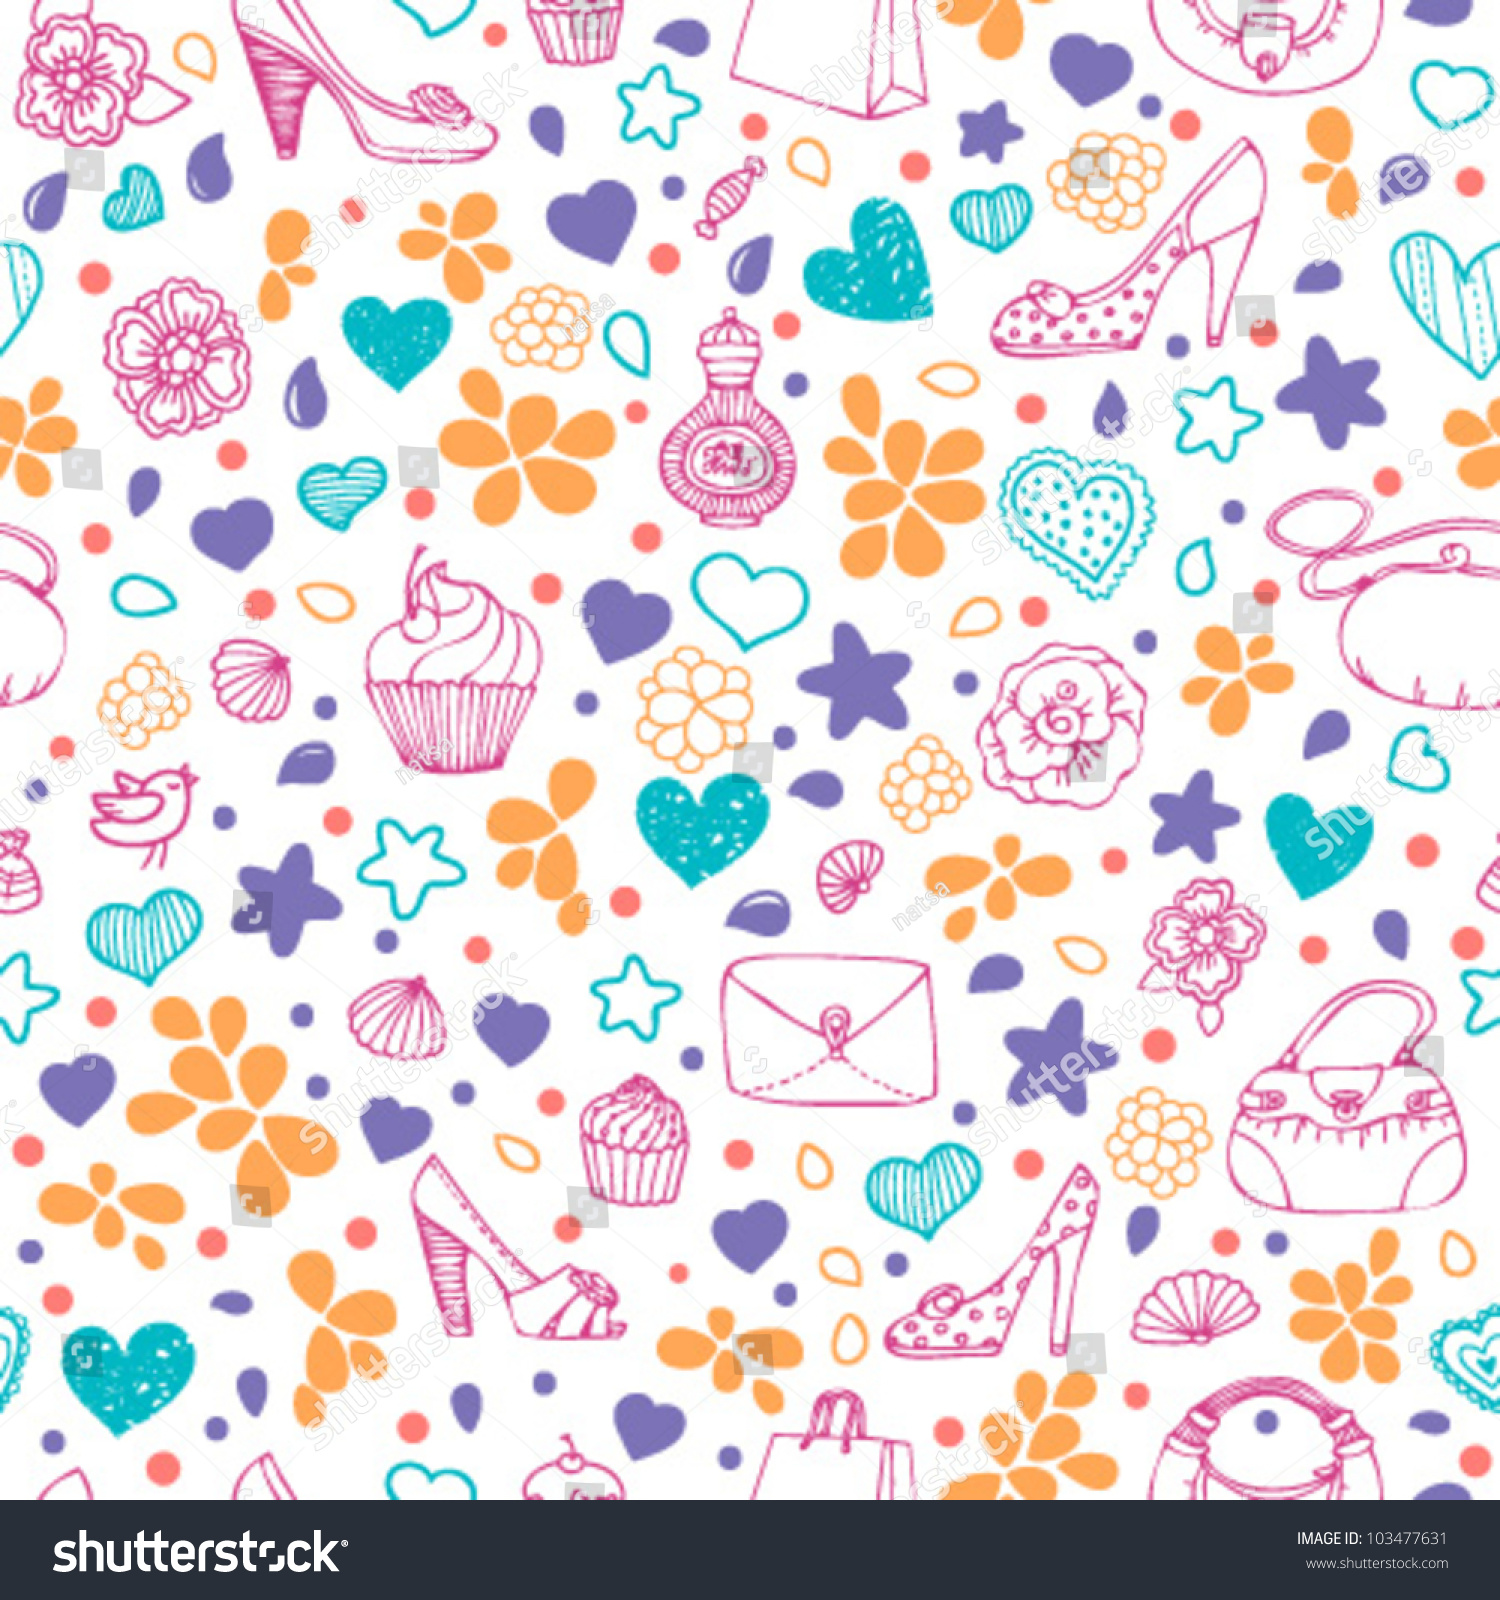 Bright Colorful Girly Seamless Pattern Stock Vector 103477631 ...